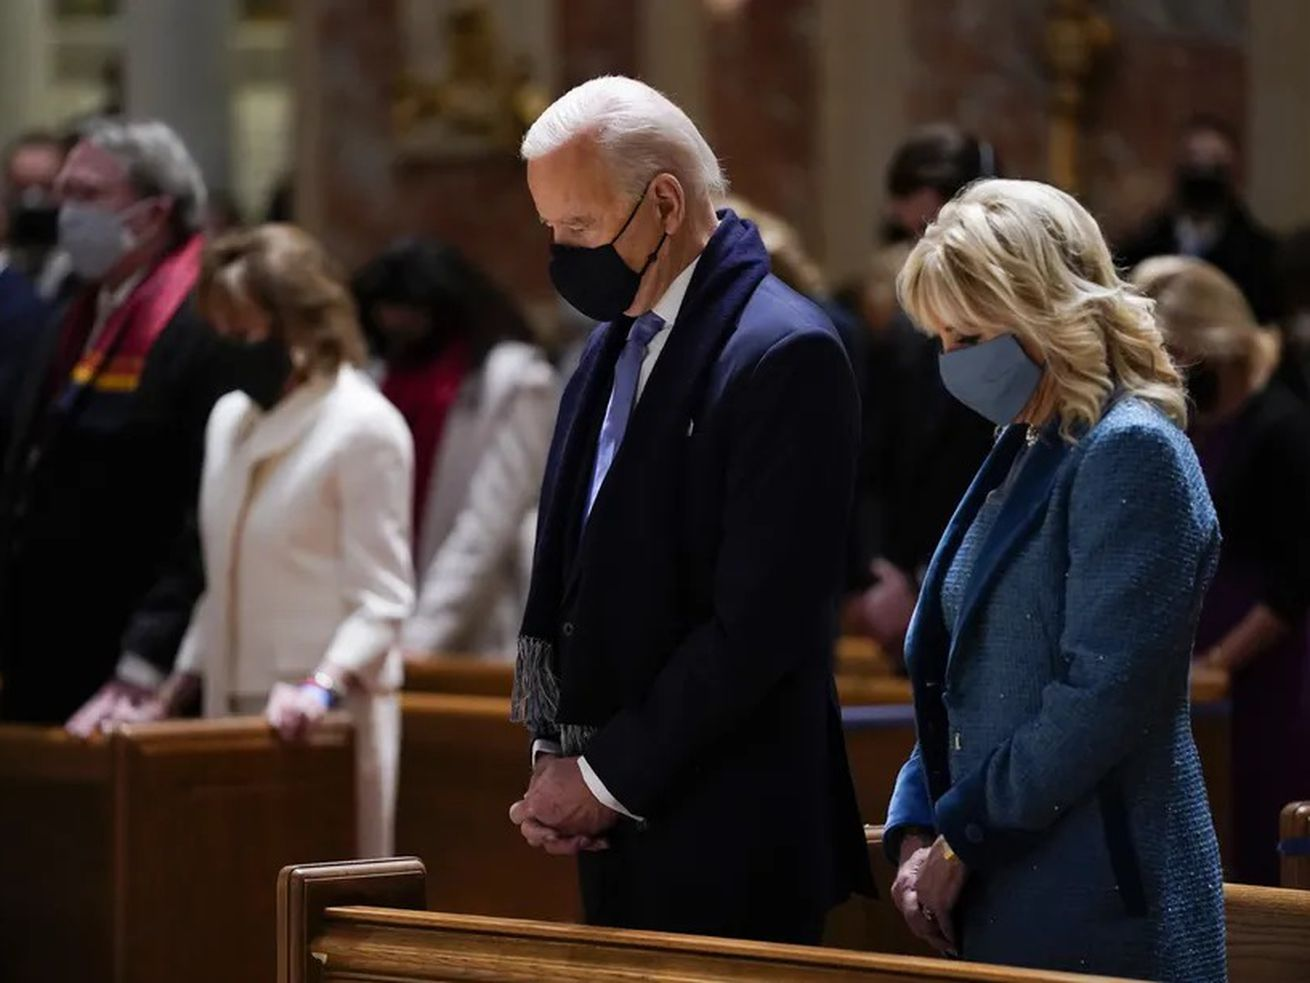 Amid the Catholic power struggle over abortion, Biden is upholding personal rights